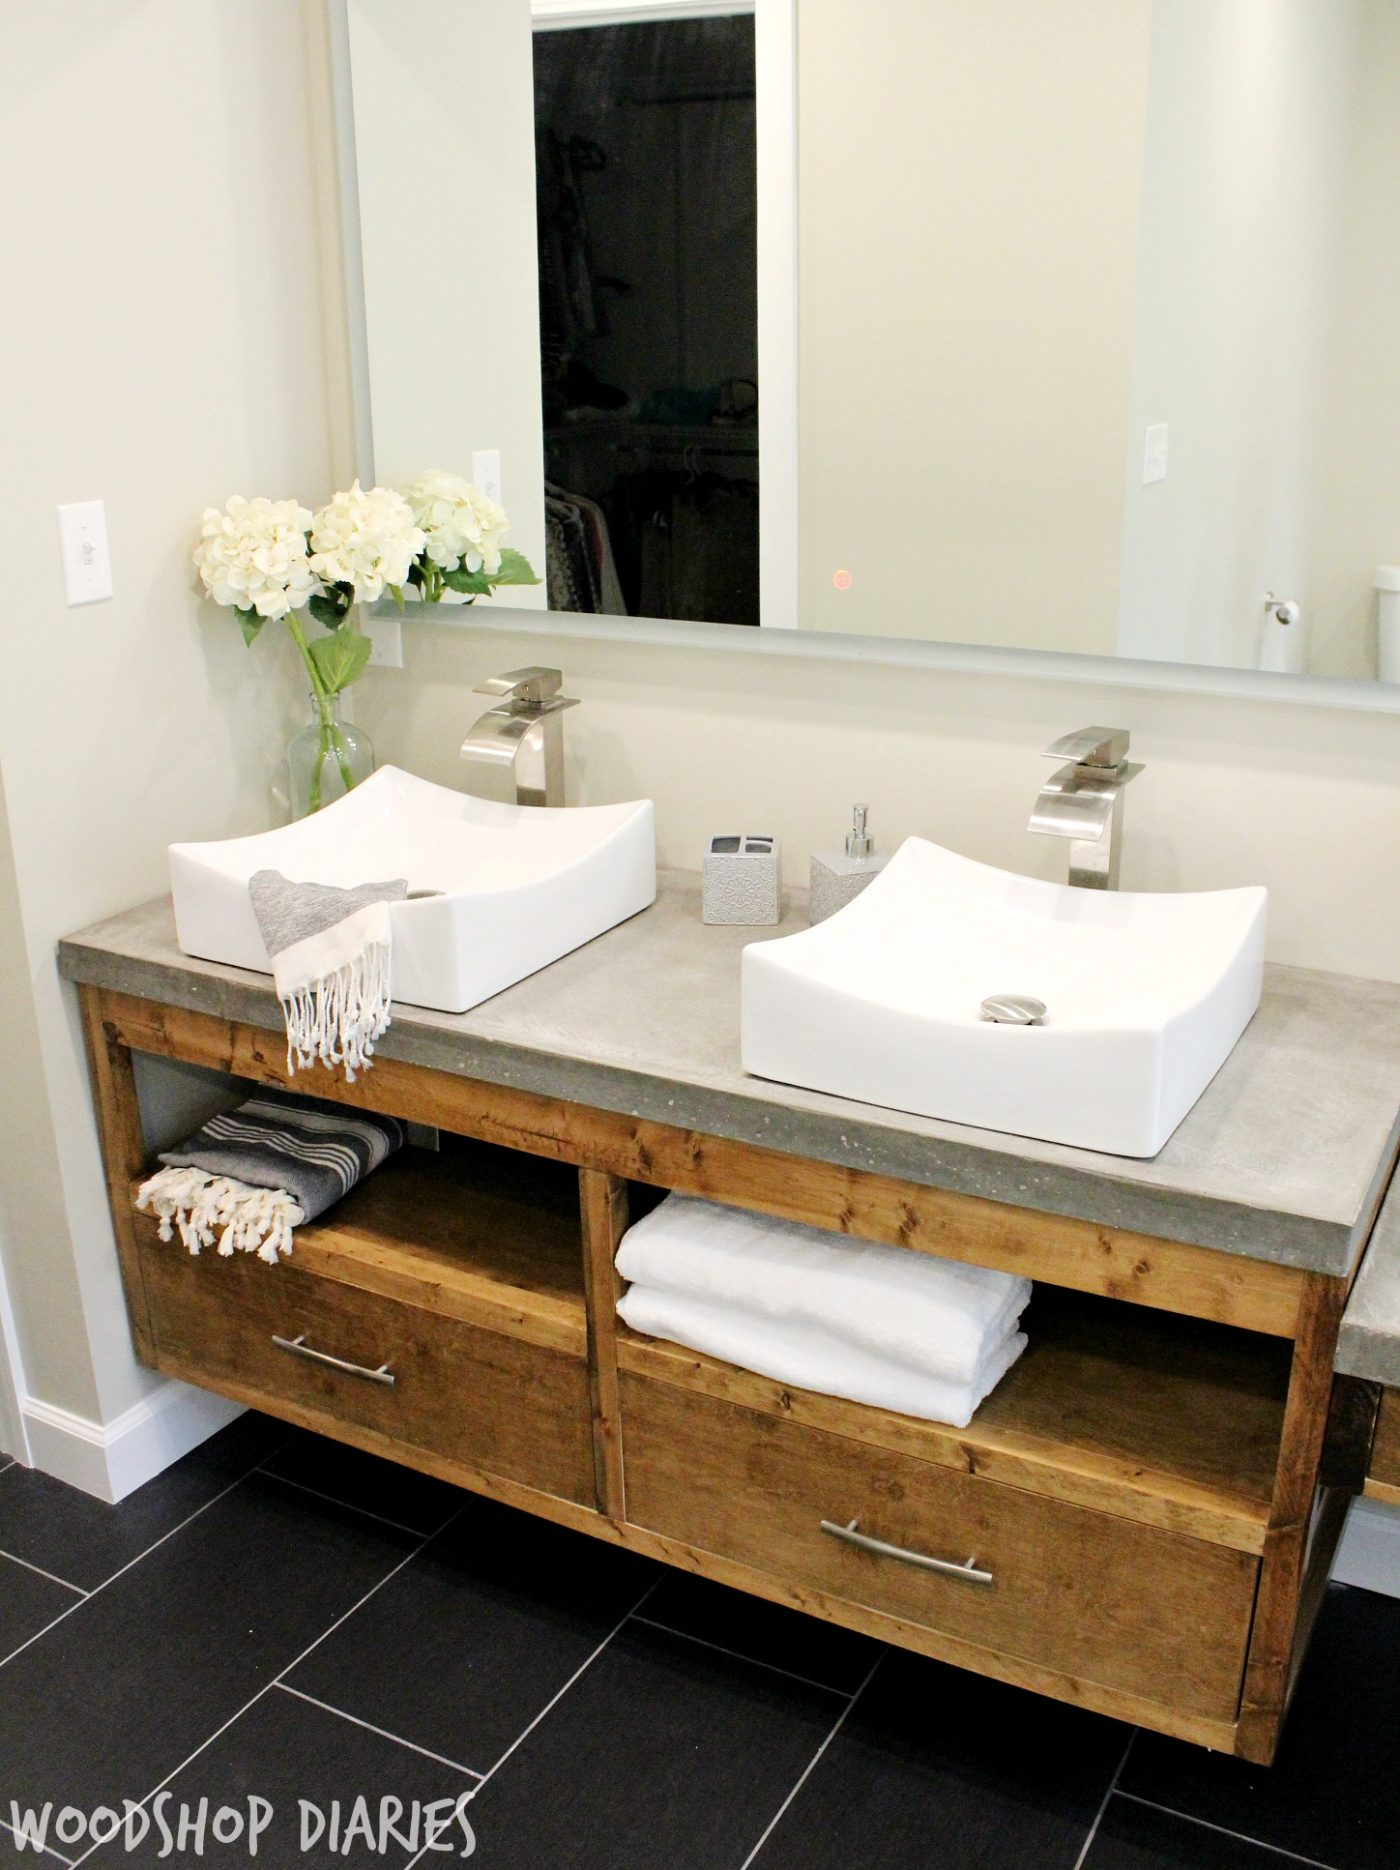 Floating Bathroom Vanity with Double Sinks - Woodshop Diaries